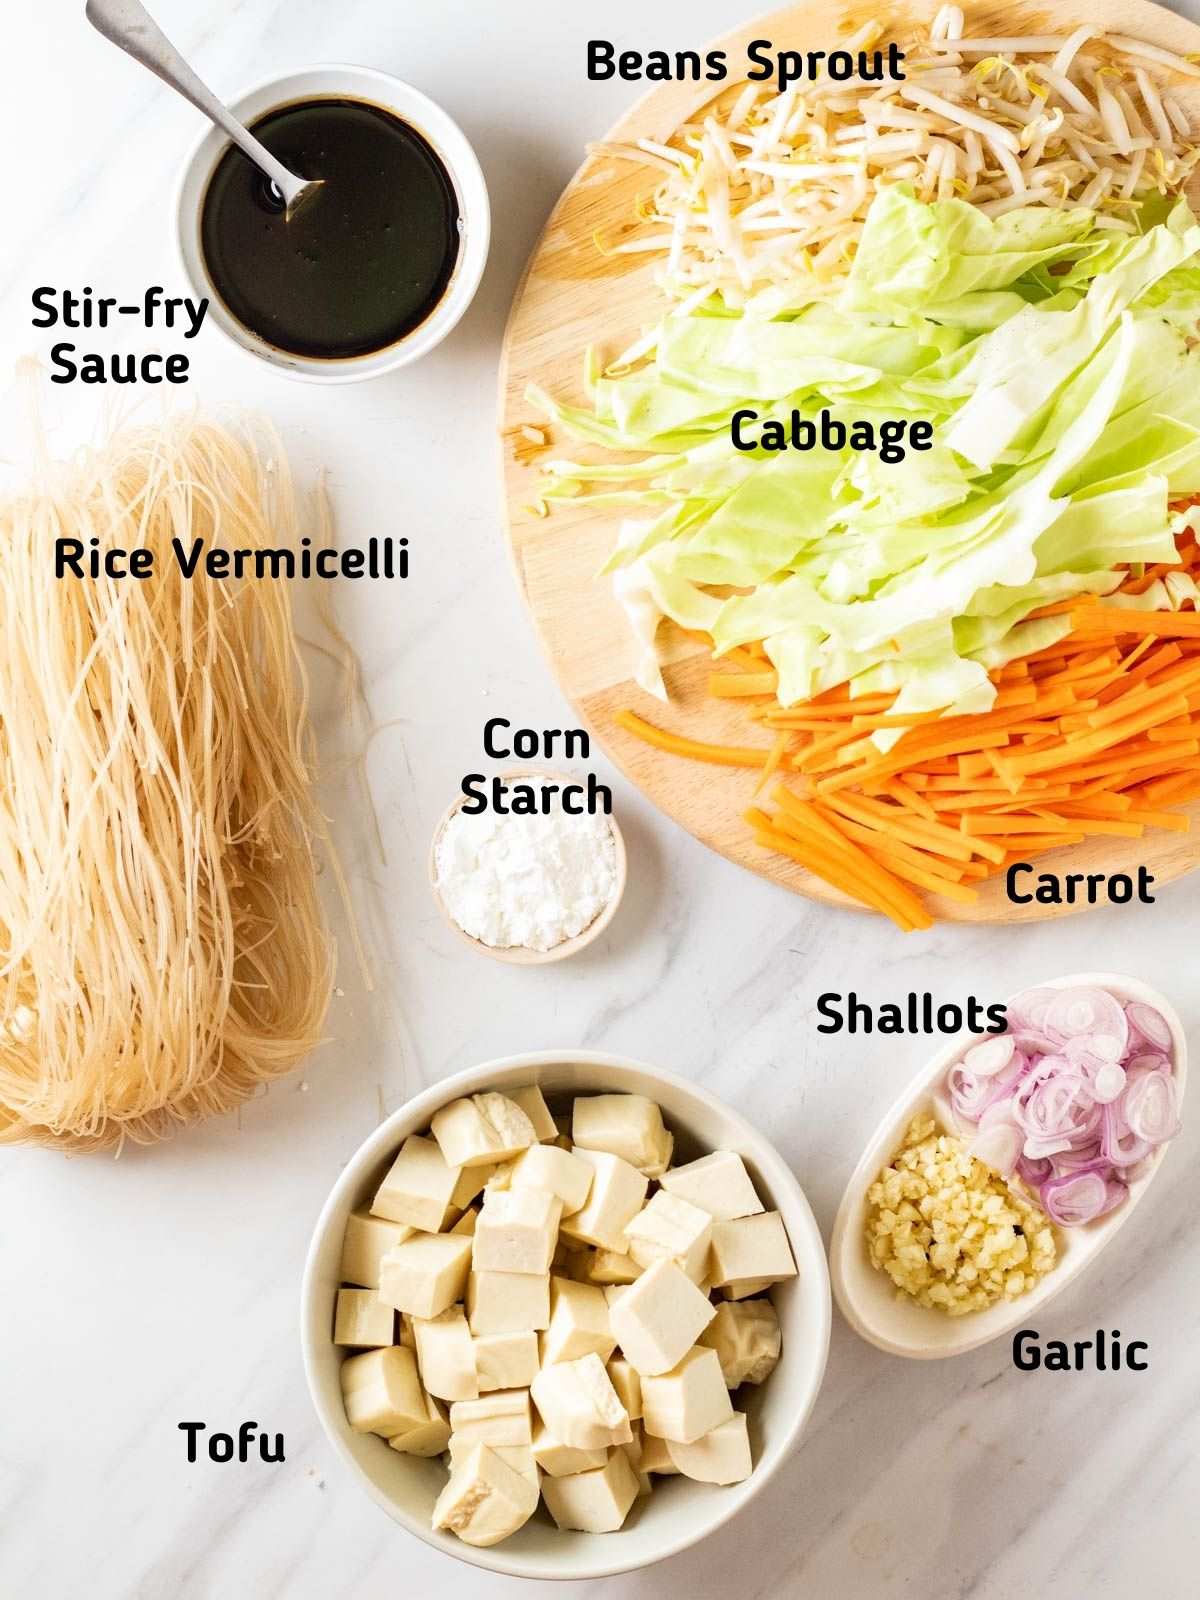 Ingredients needed to make stir-fry rice vermicelli.